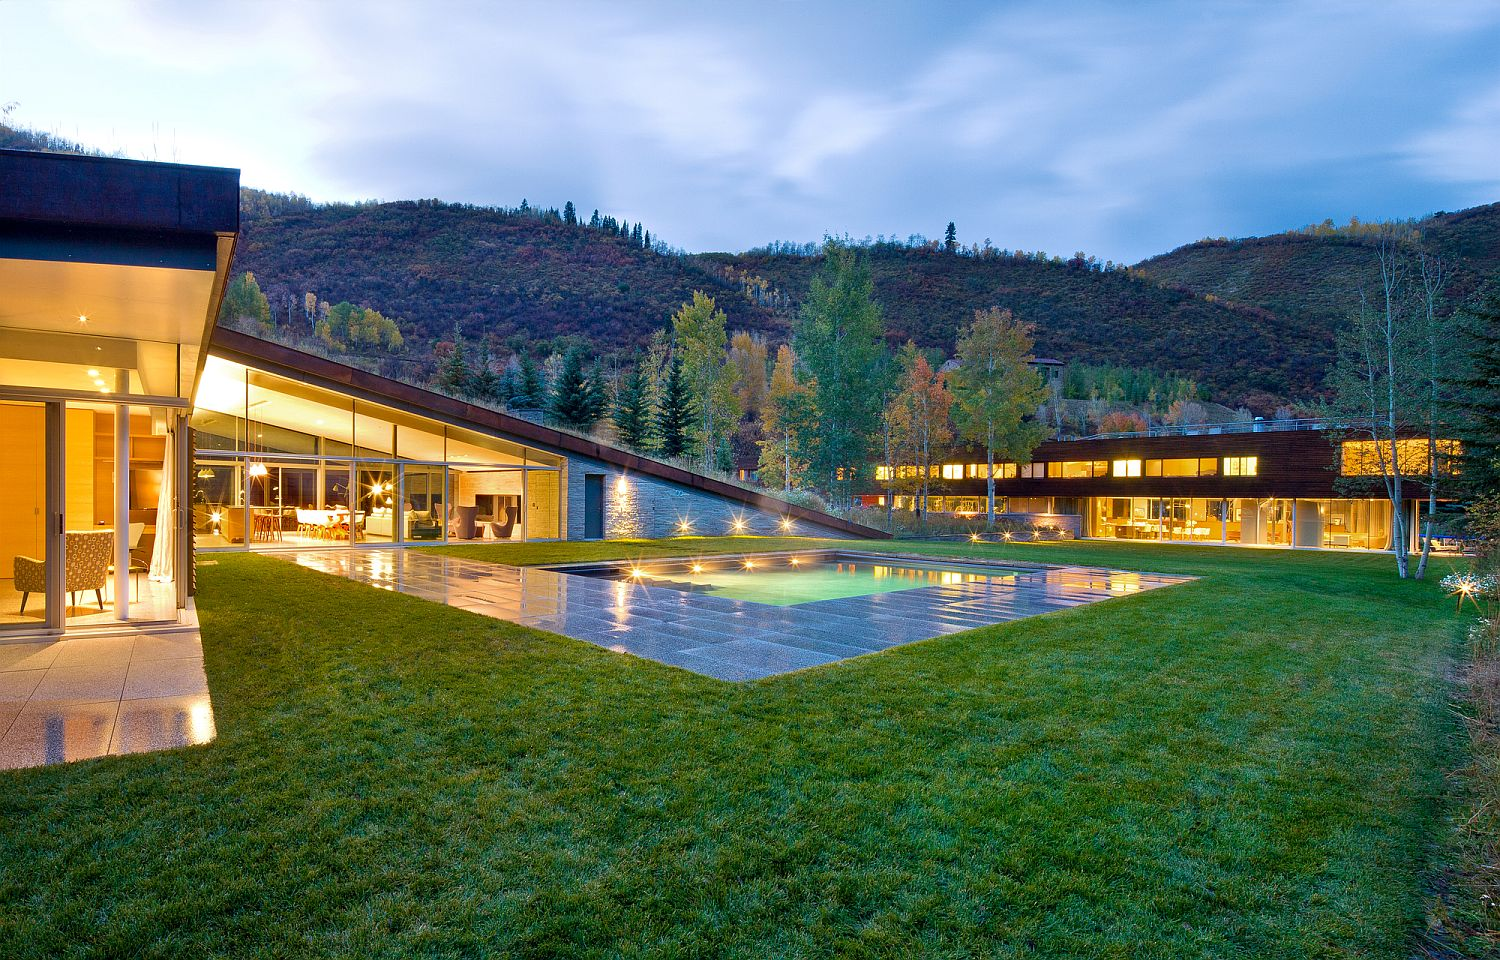 Two new stunning additions to the moutain home give it a green makeover